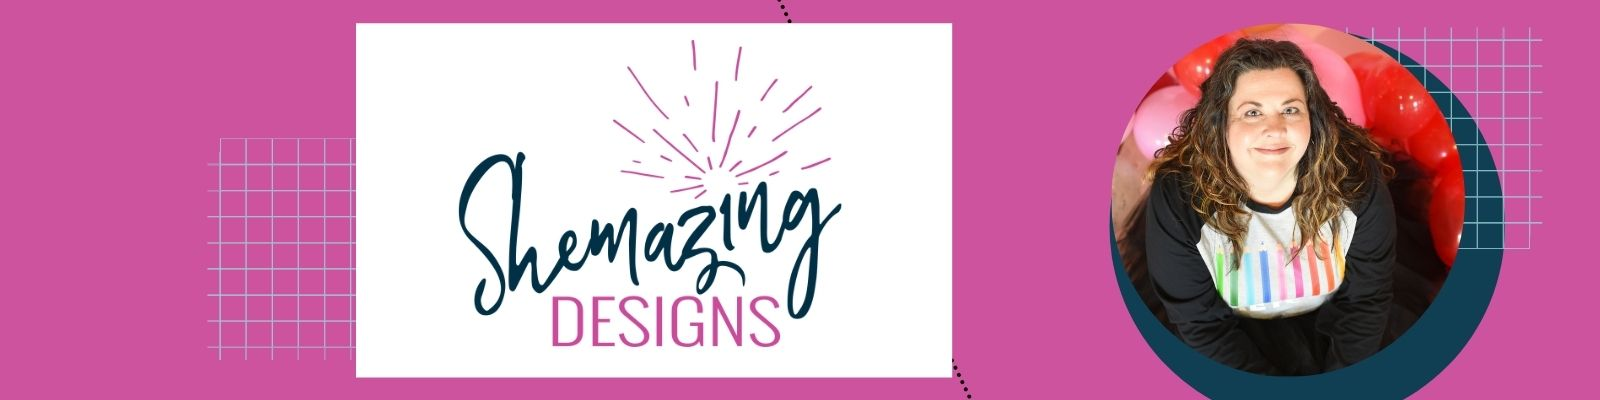 Shemazing Designs logo and portrait of founder Sheena Mays